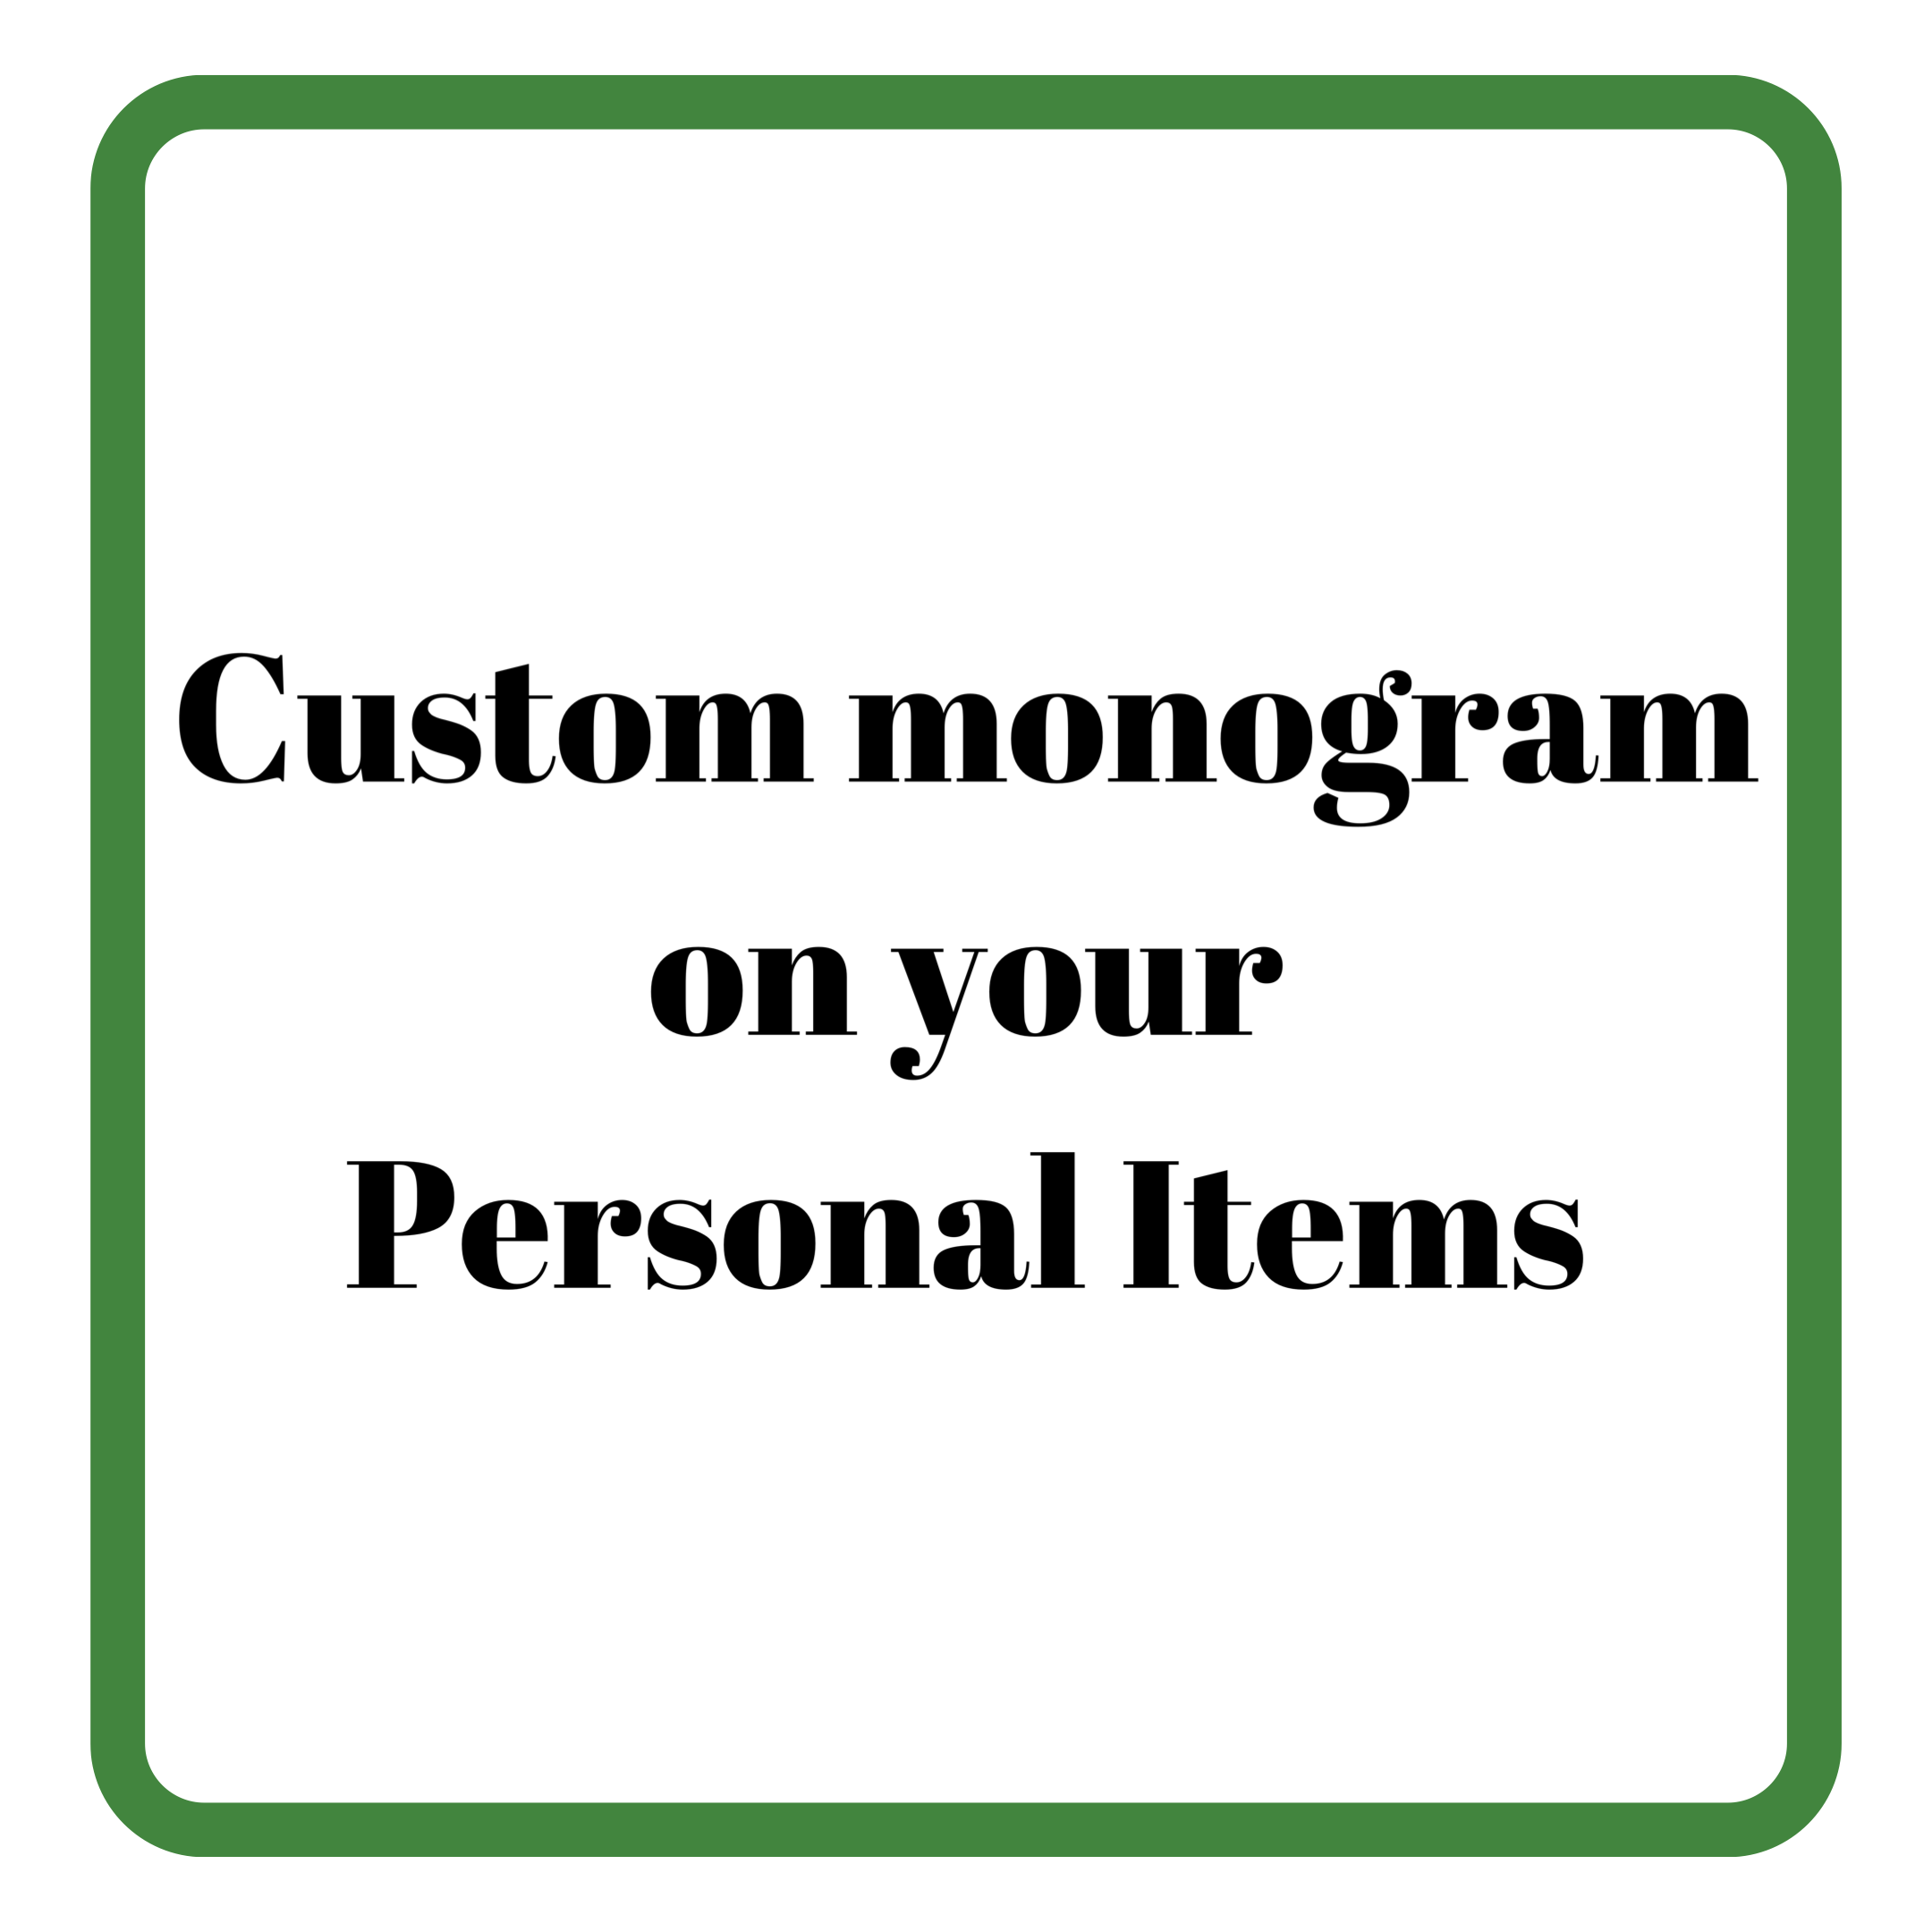 Custom Monogram on Your Personal Items